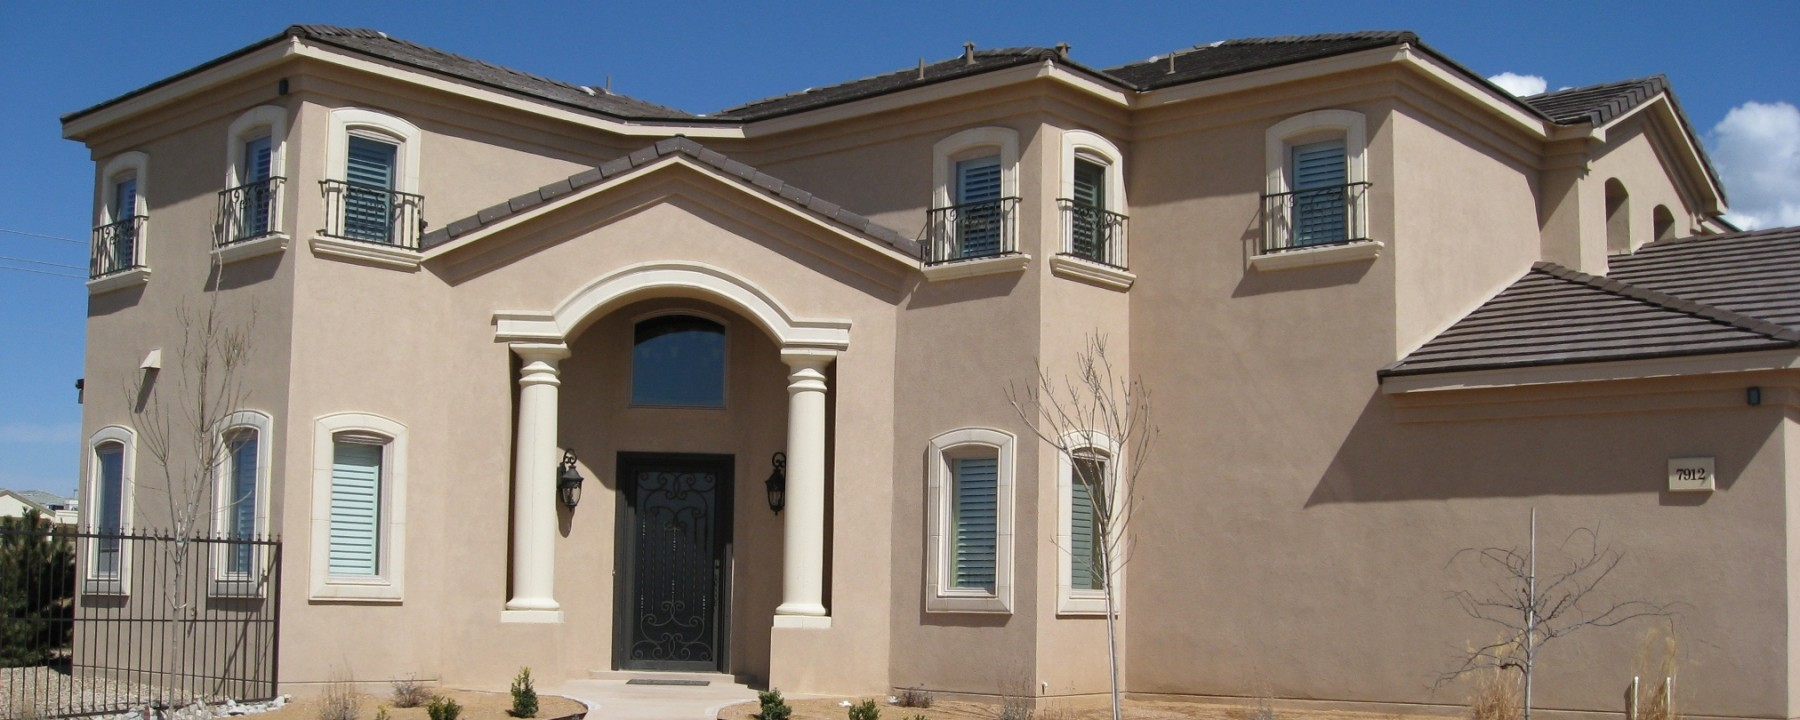 Mesa Precast | Home Architectural Design | Matching Design Elements with Precise Color Matching for High End Aesthetic Appeal | Architectural Precast, GFRC